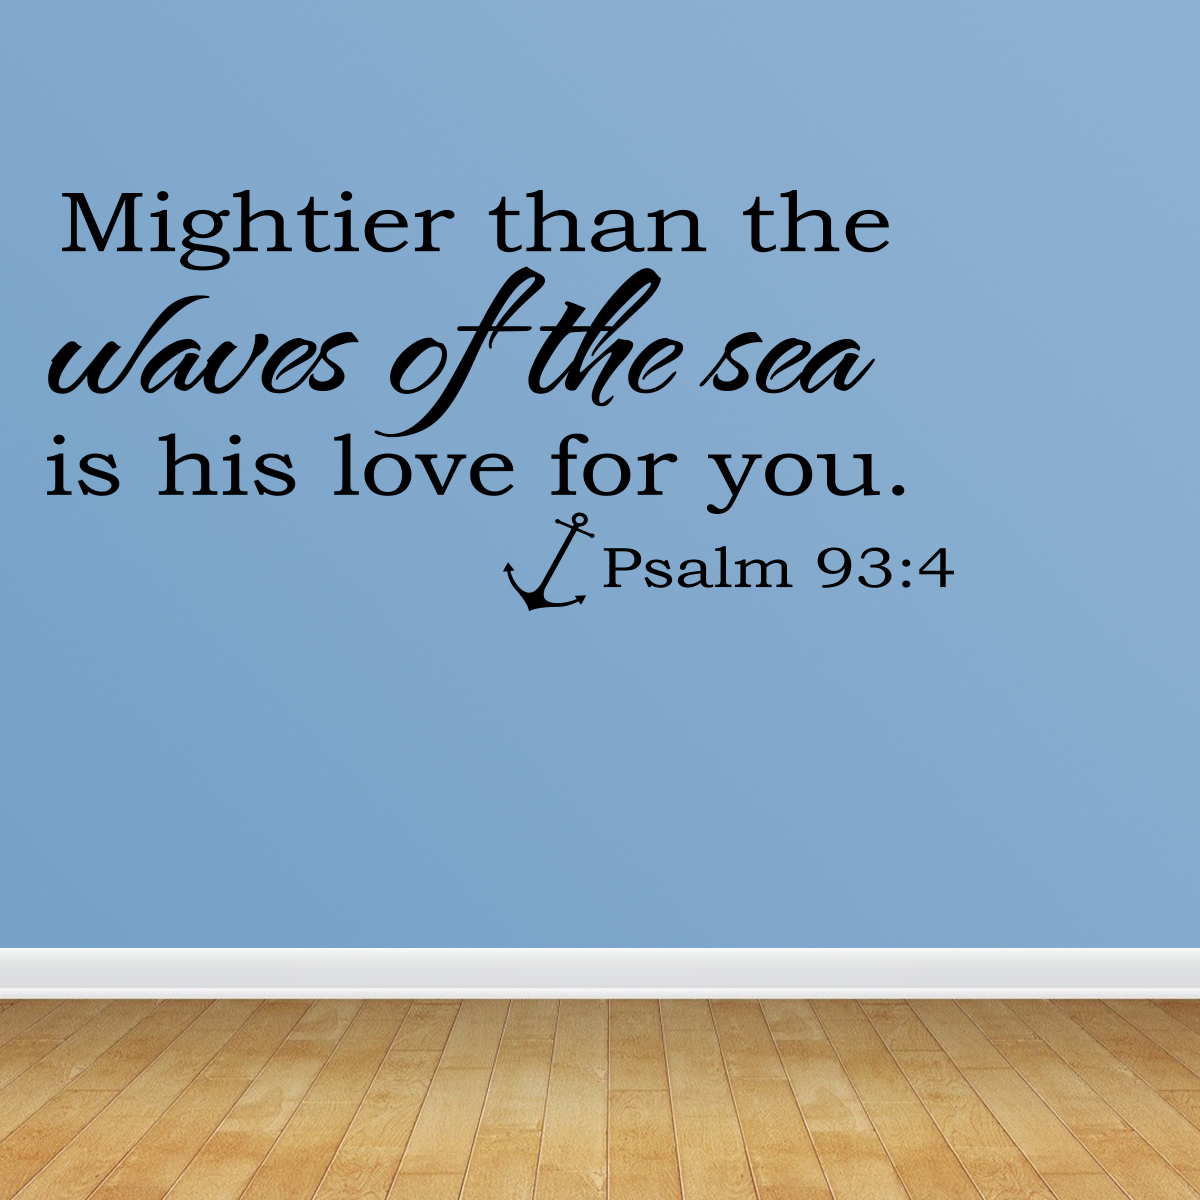 Wall Decal Quote Mightier Than The Waves Of The Sea Is His Love For You R24